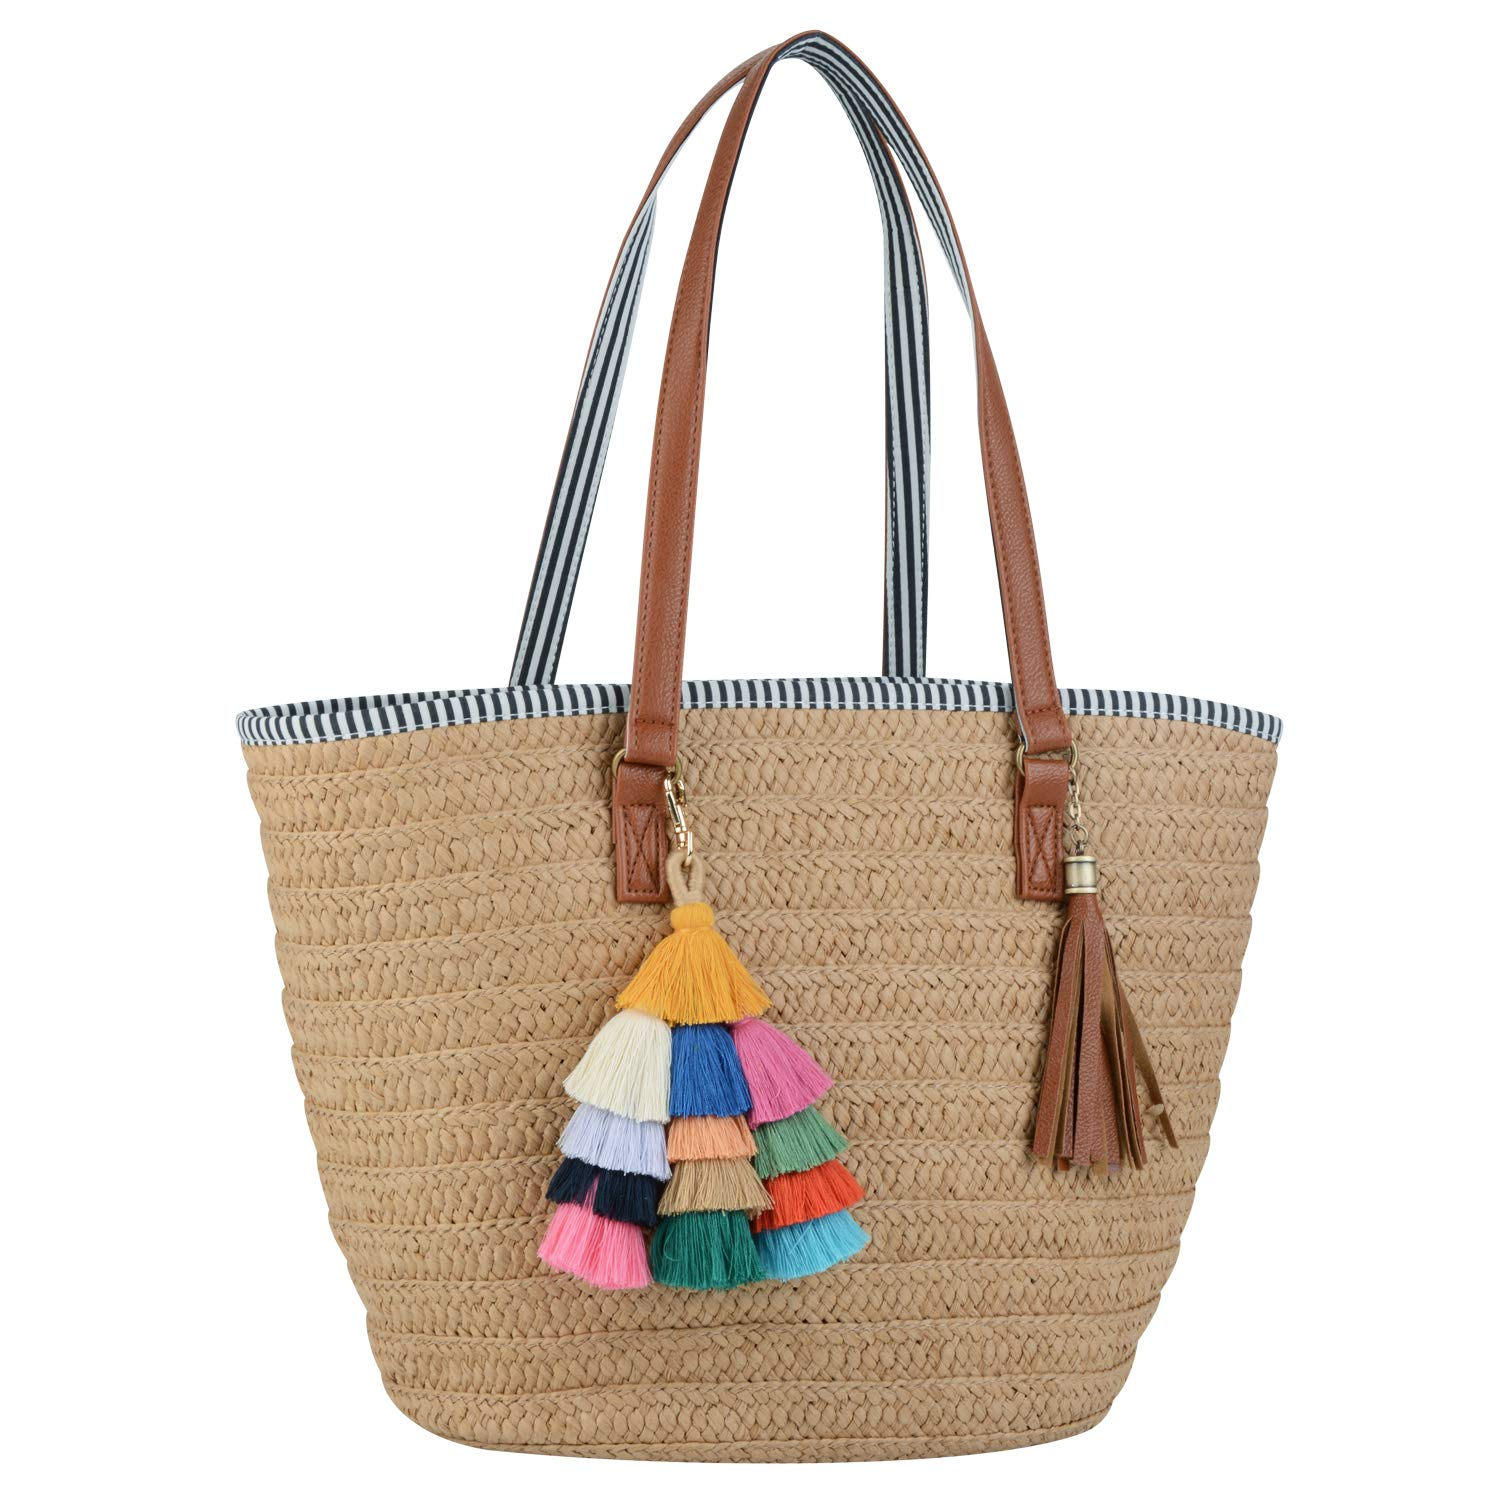 COOFIT Straw Purse, Straw Beach Bag Pompom Shoulder Bag Summer Woven Bags by COOFIT